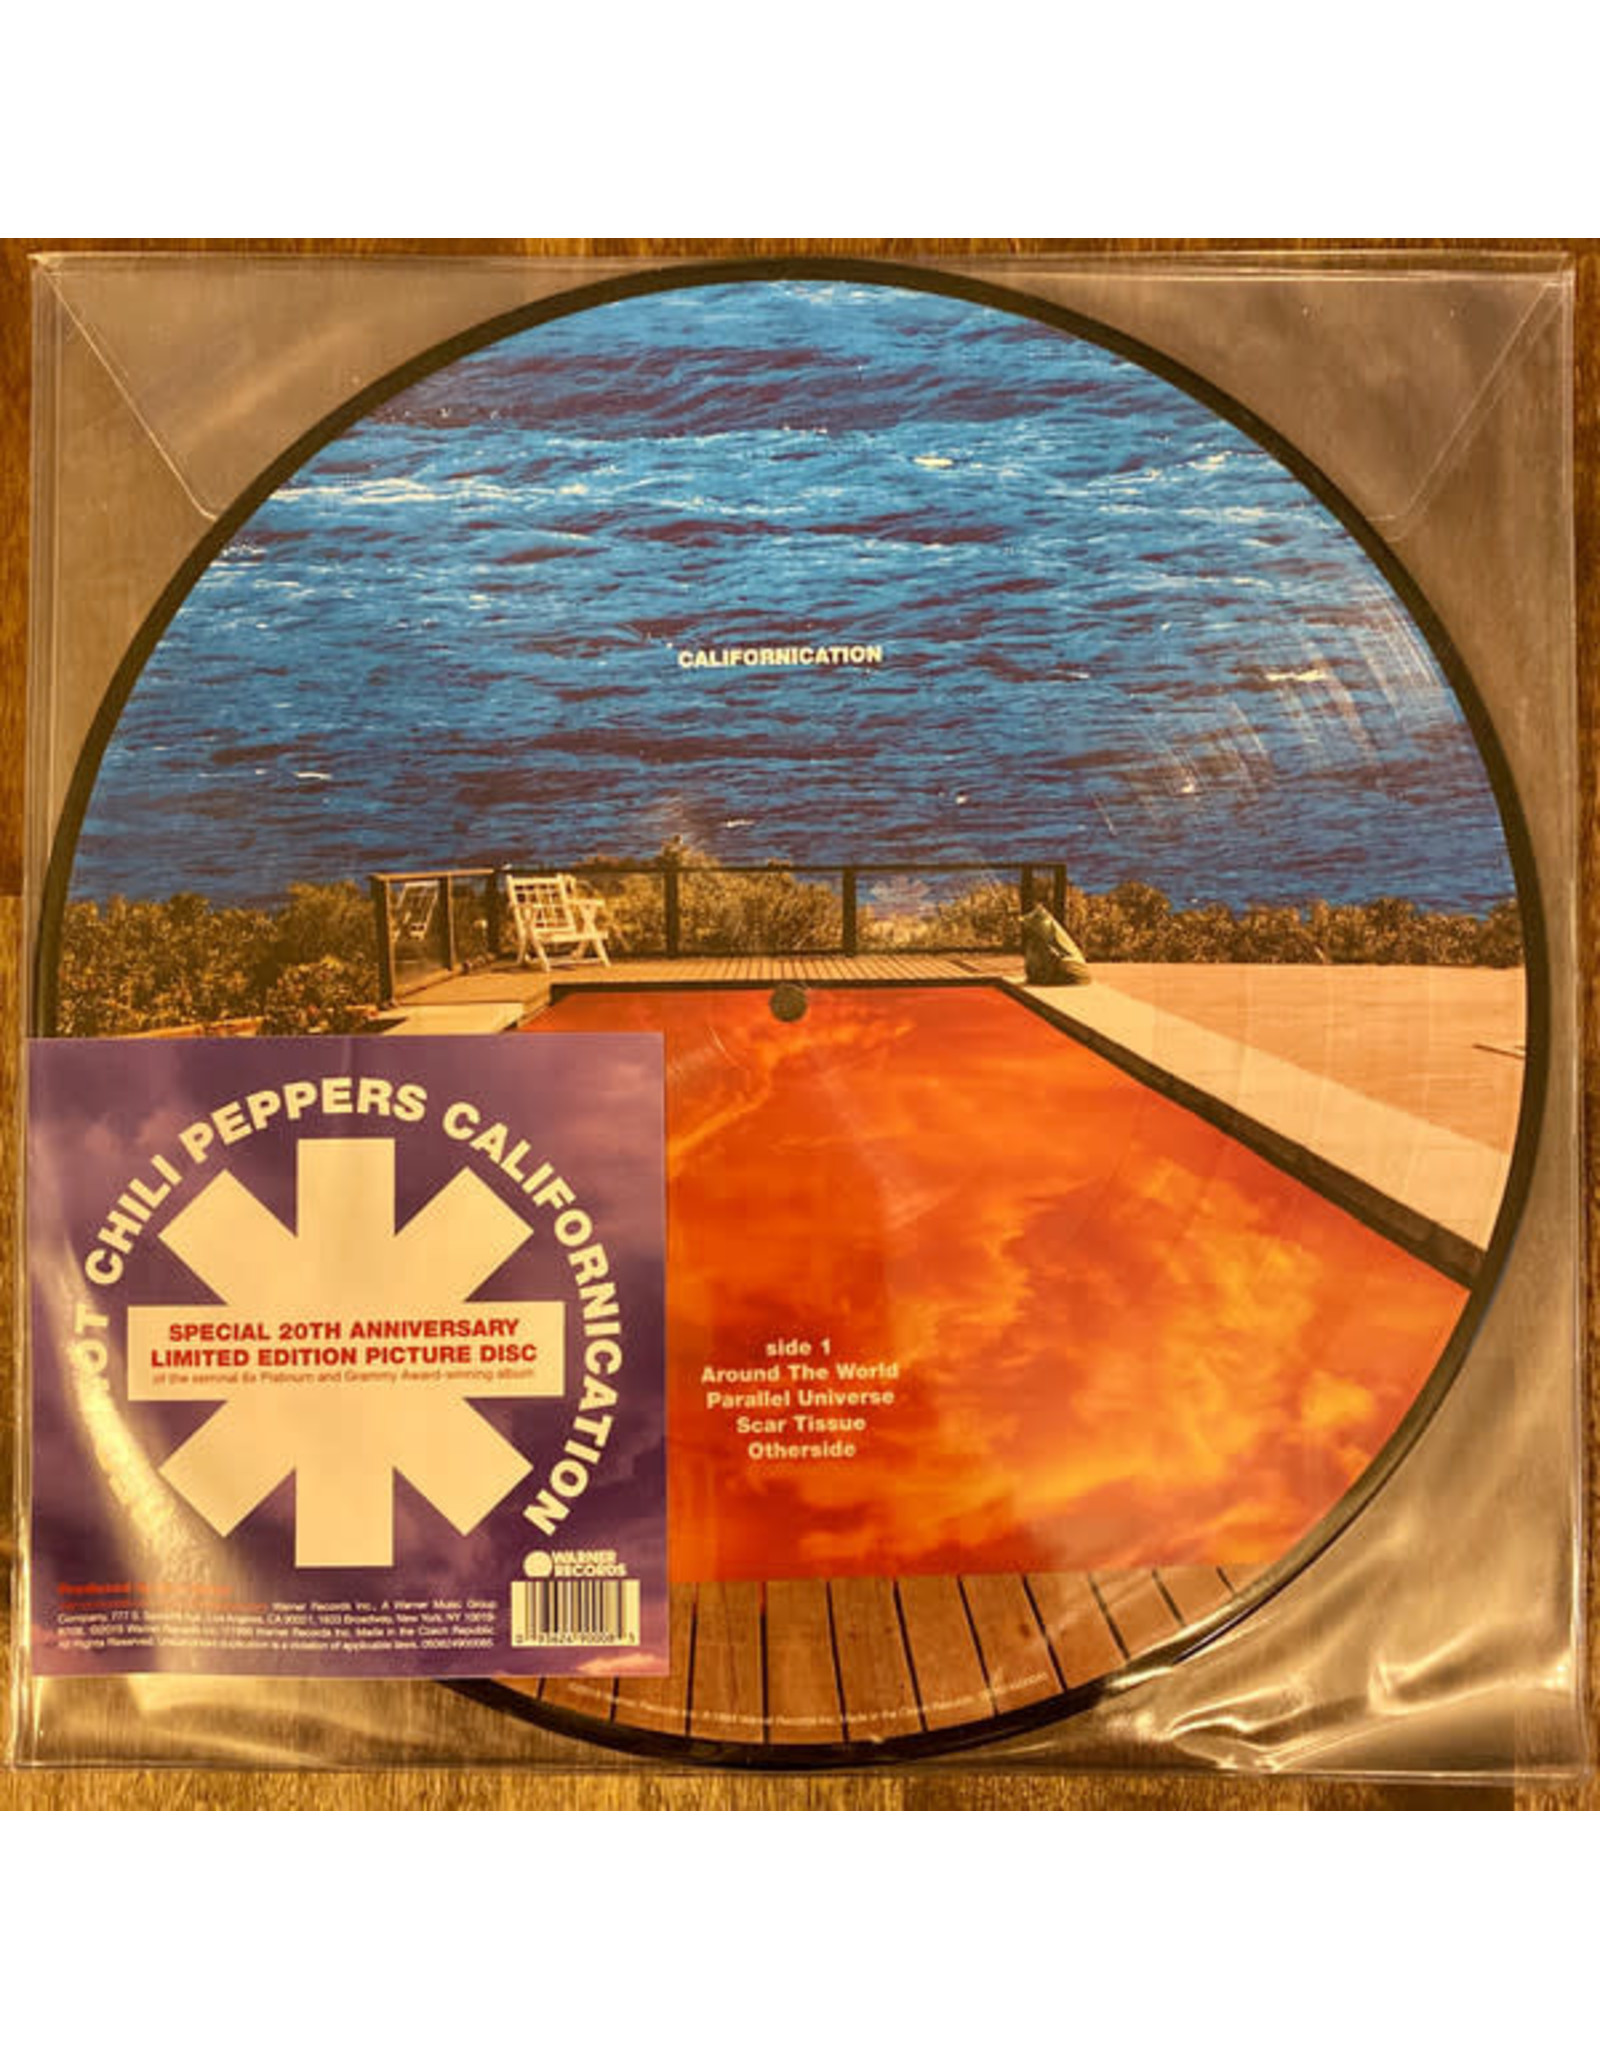 Red Hot Chili Peppers - Californication LP (20th Anniversary Picture Disc)